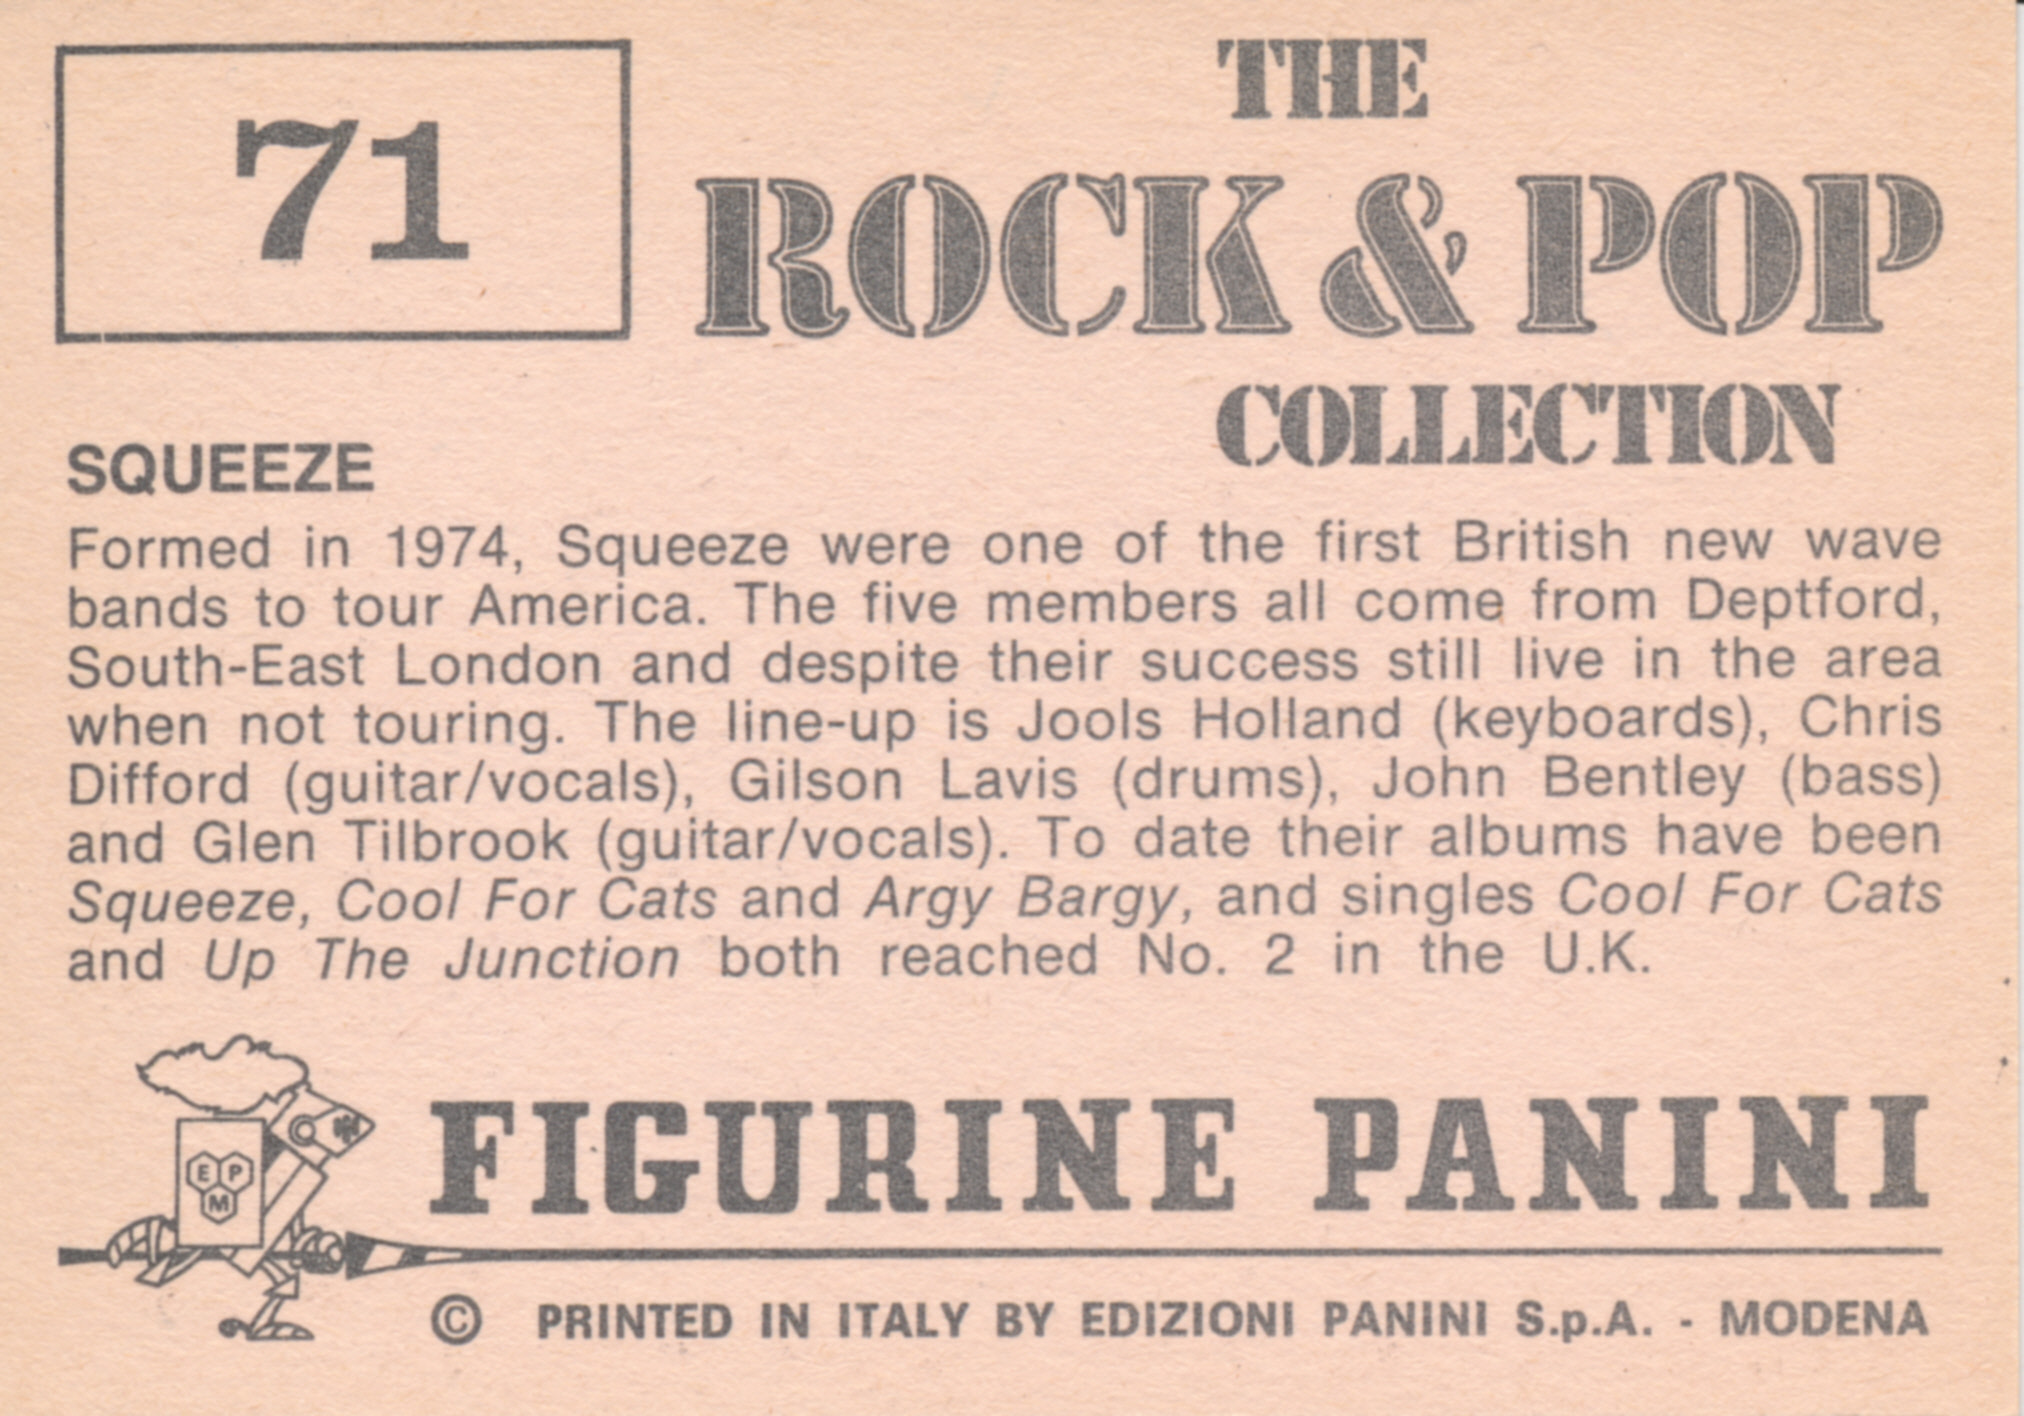 Figurine Panini - The Rock and Pop Collection - Squeeze - back